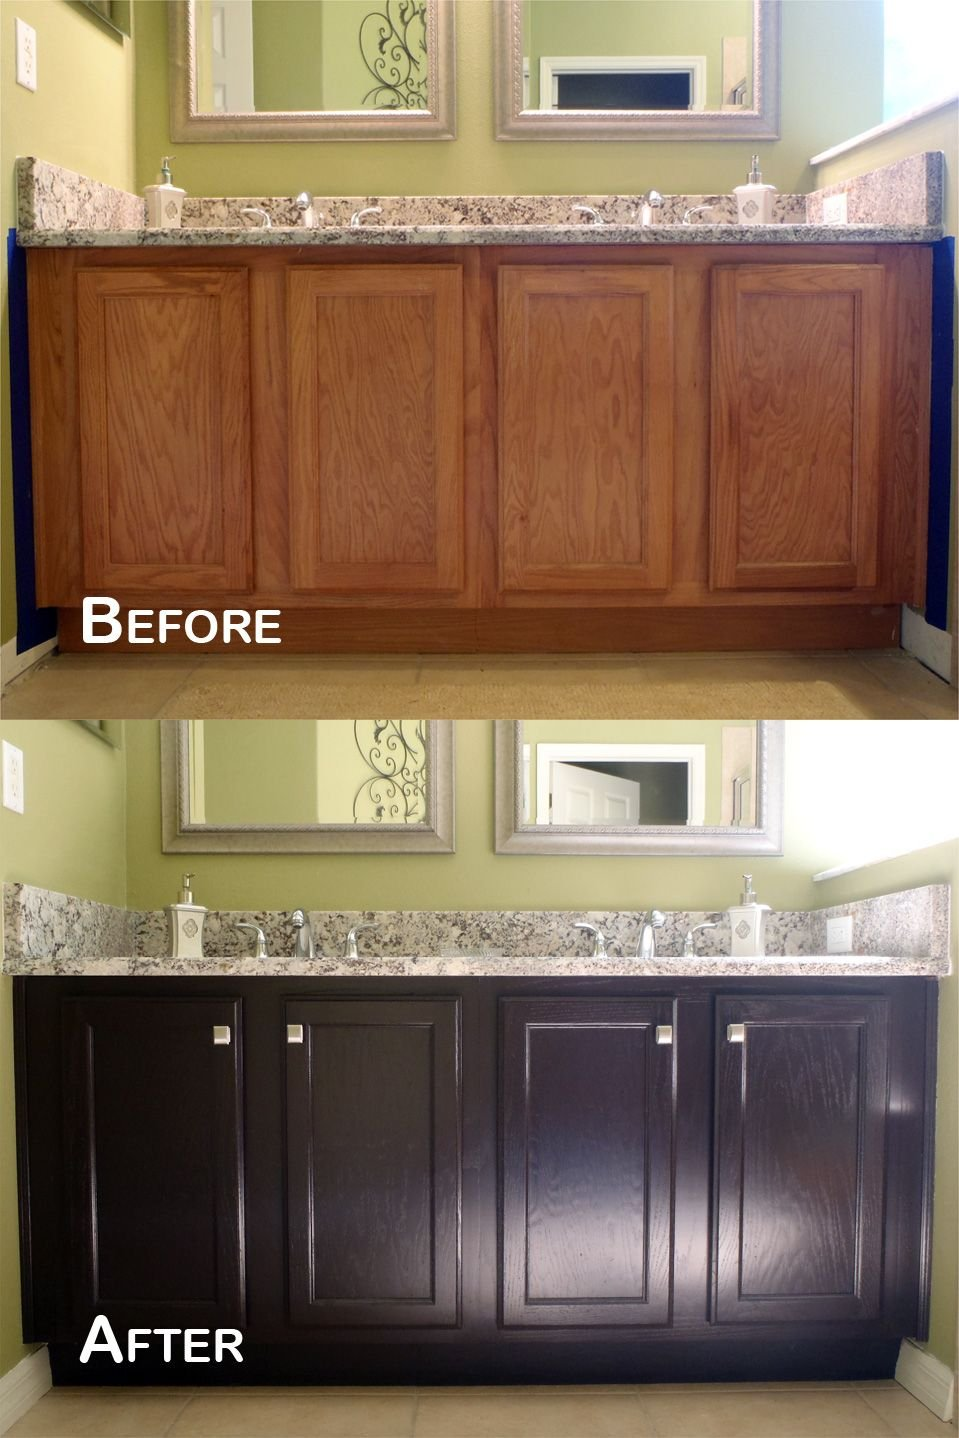 Amazing Transformation General Finish Java Gel Stain Staining Kitchen Cabinets Ideas